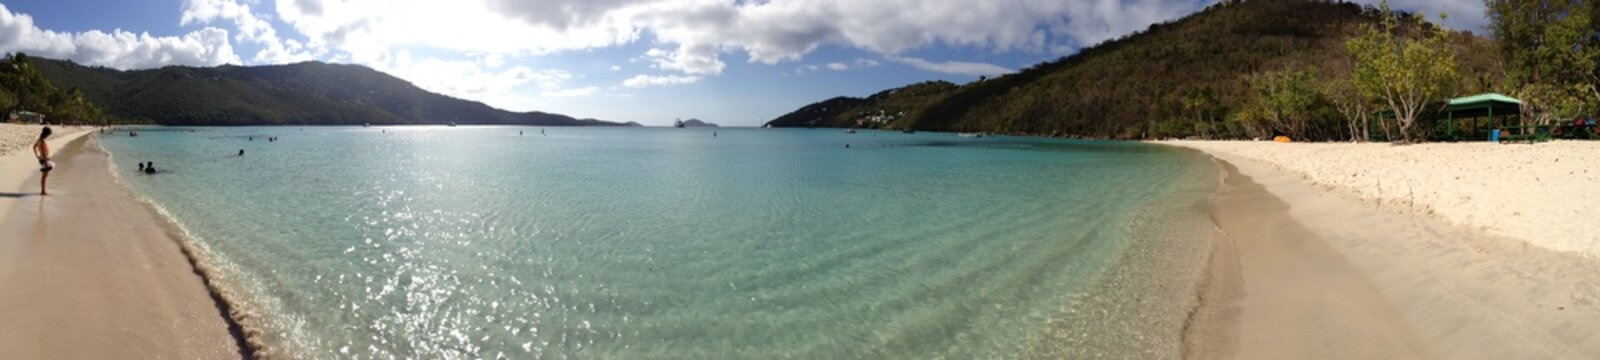 Magens Bay, Saint Thomas USVI